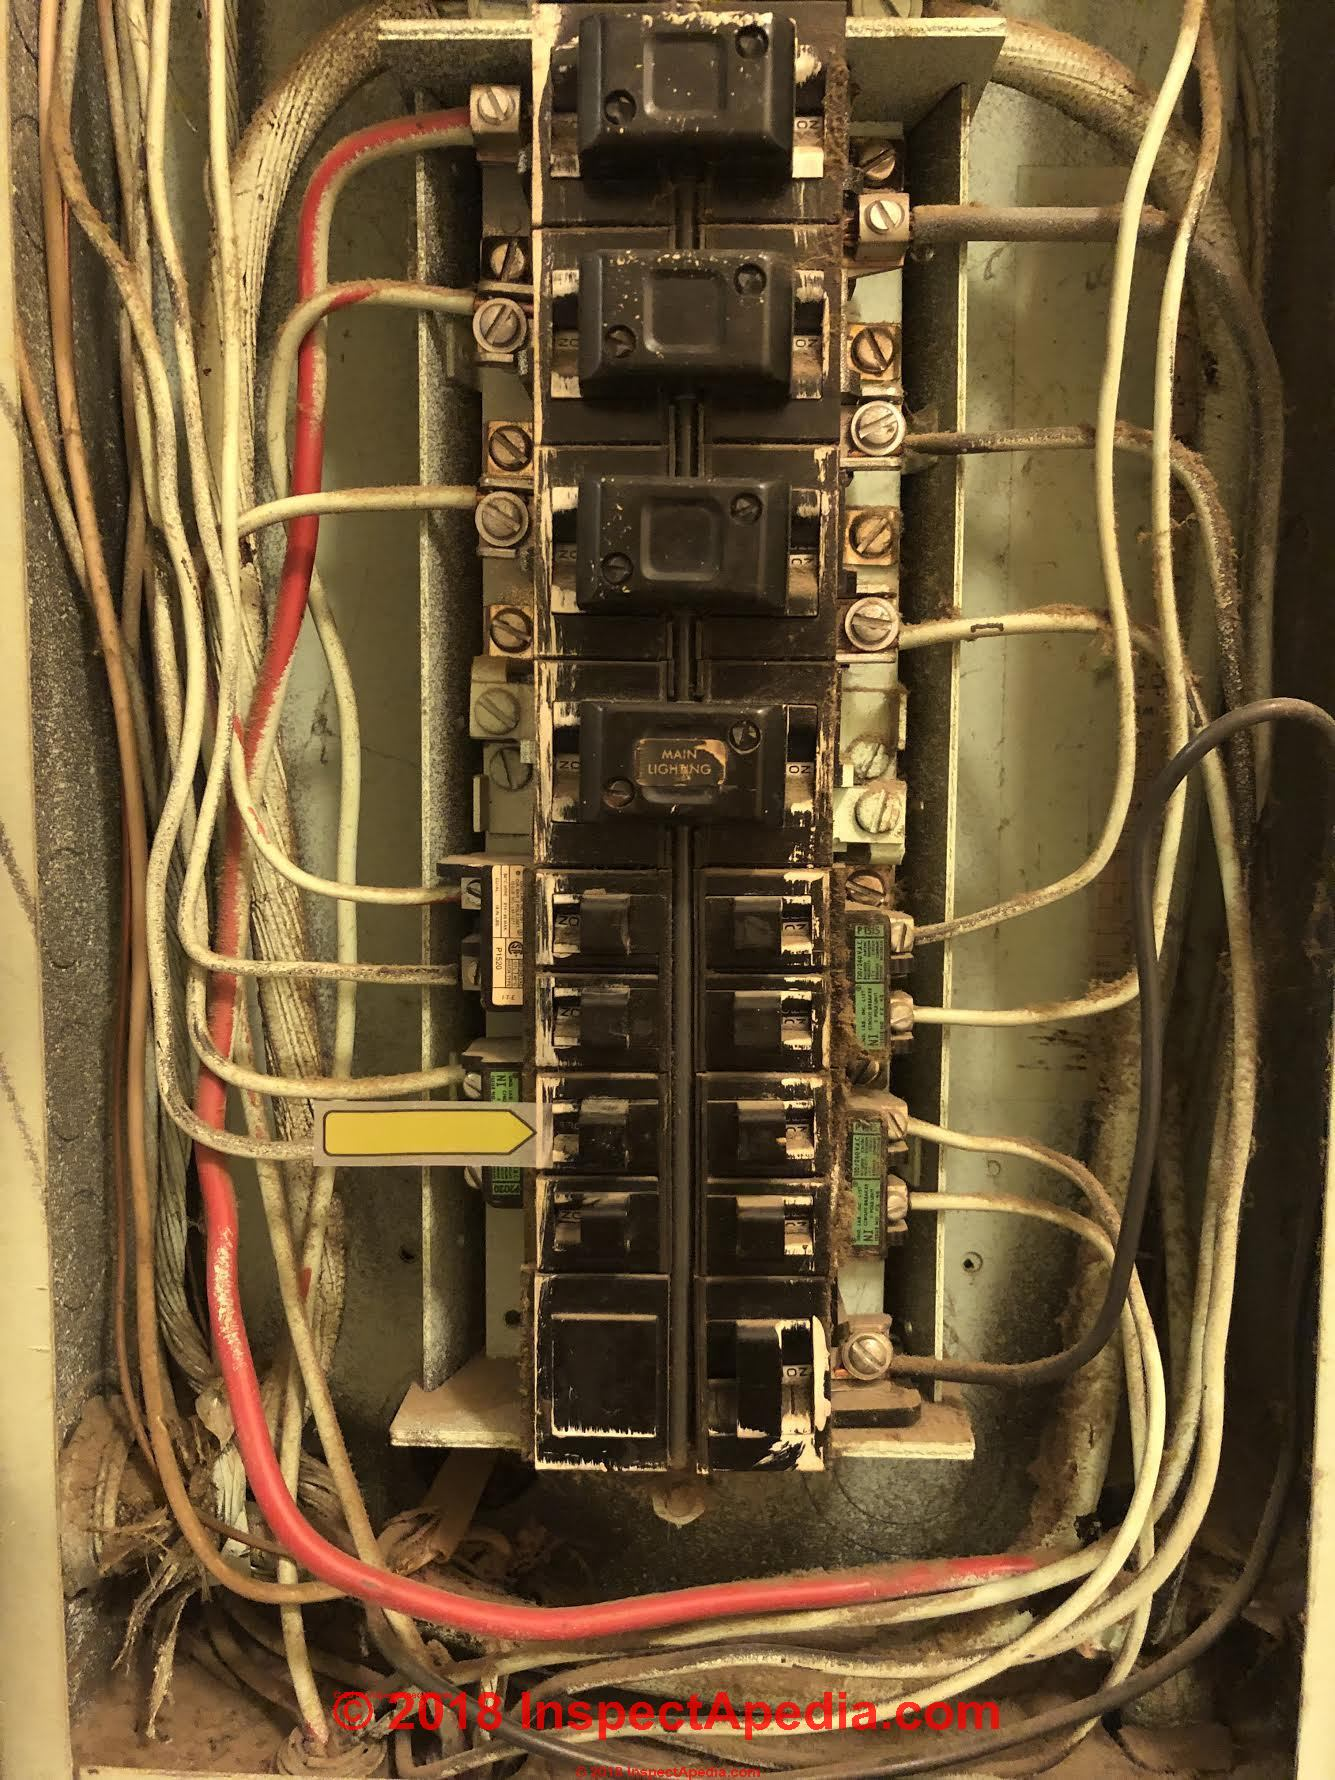 hight resolution of bulldog pushmatic circuit breakers which are the main switches c inspectapedia